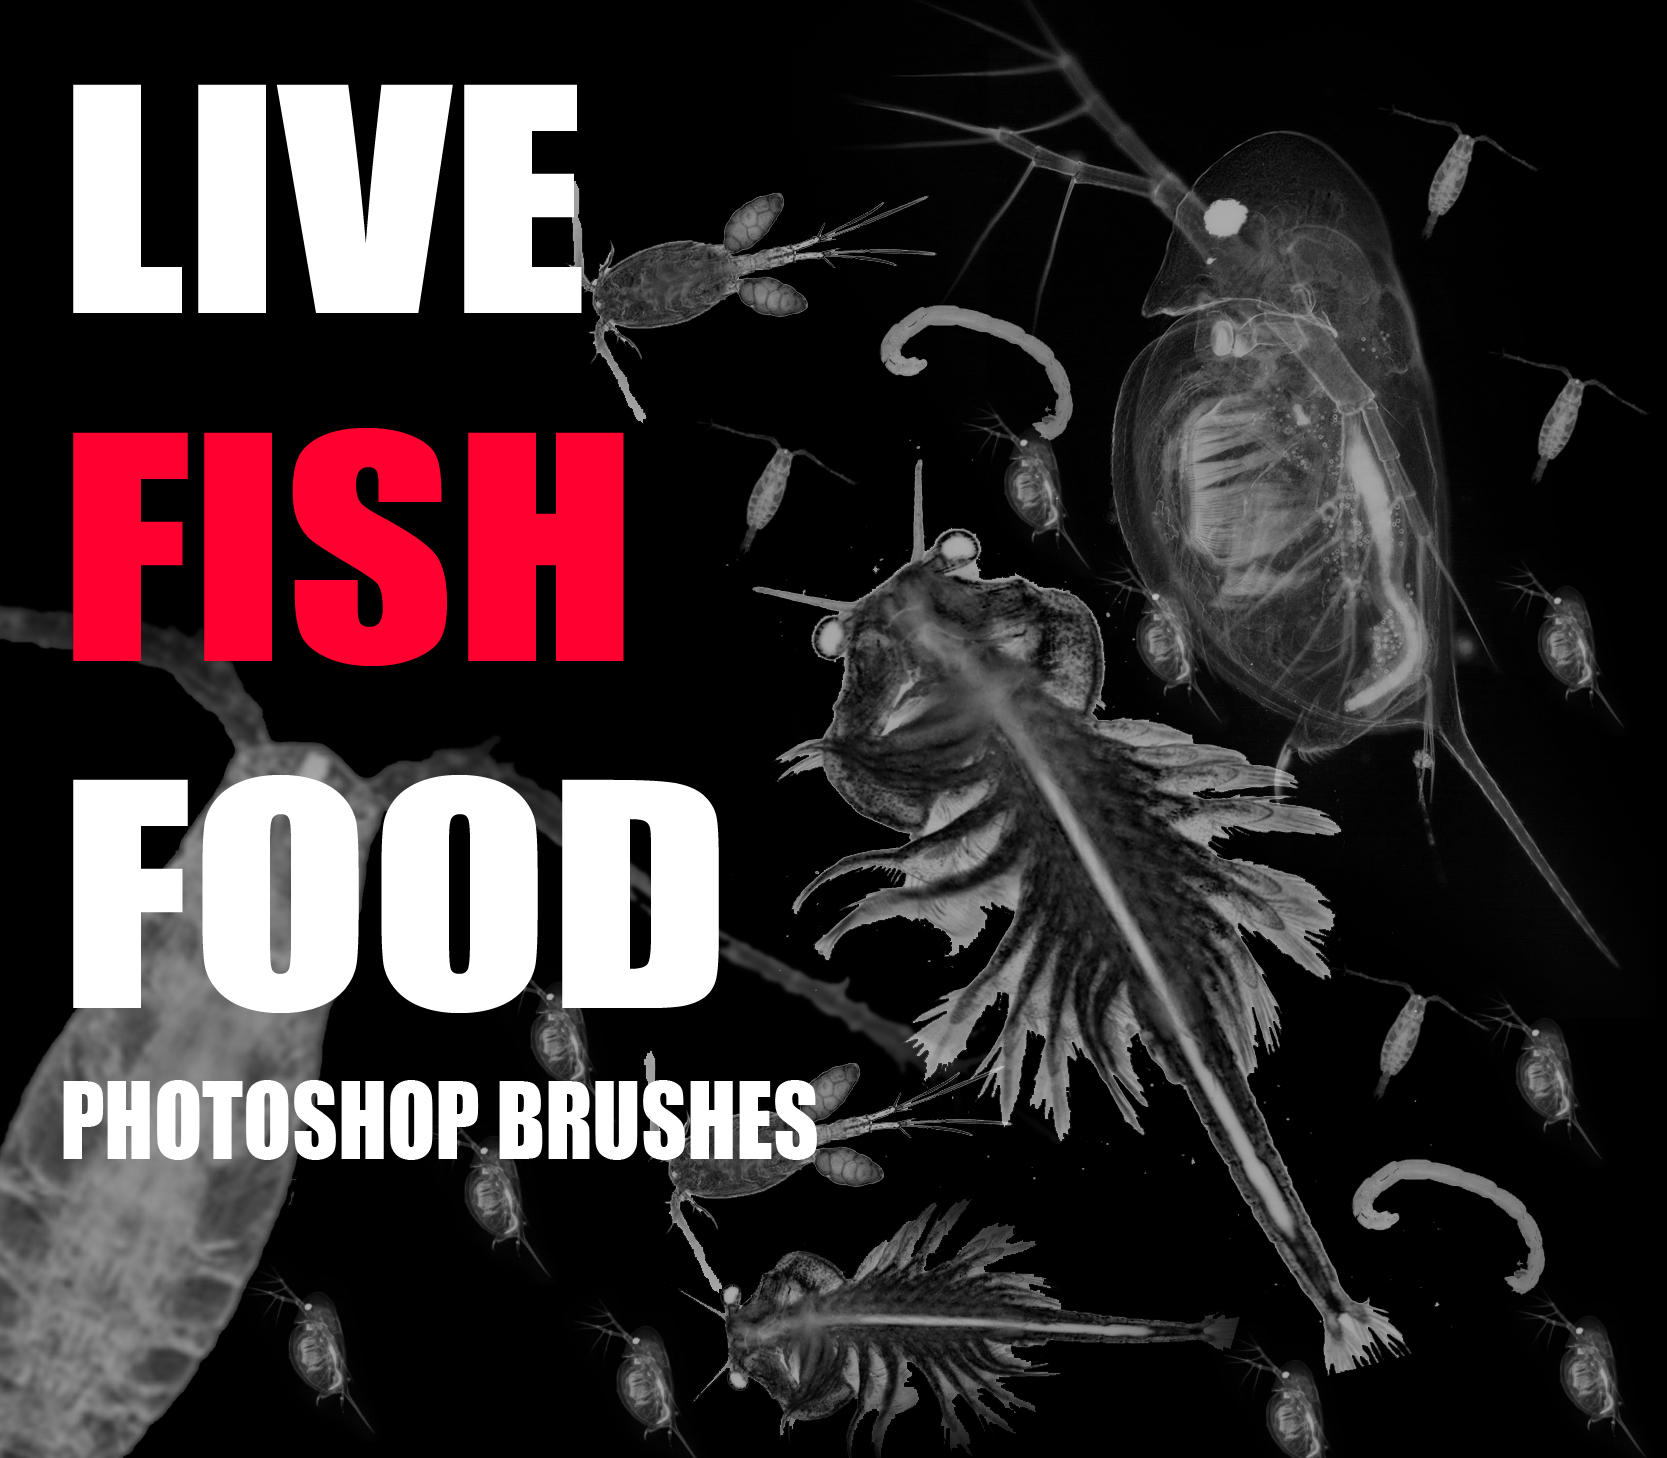 Live fish food brushes by the mattness on deviantart for Live fish food